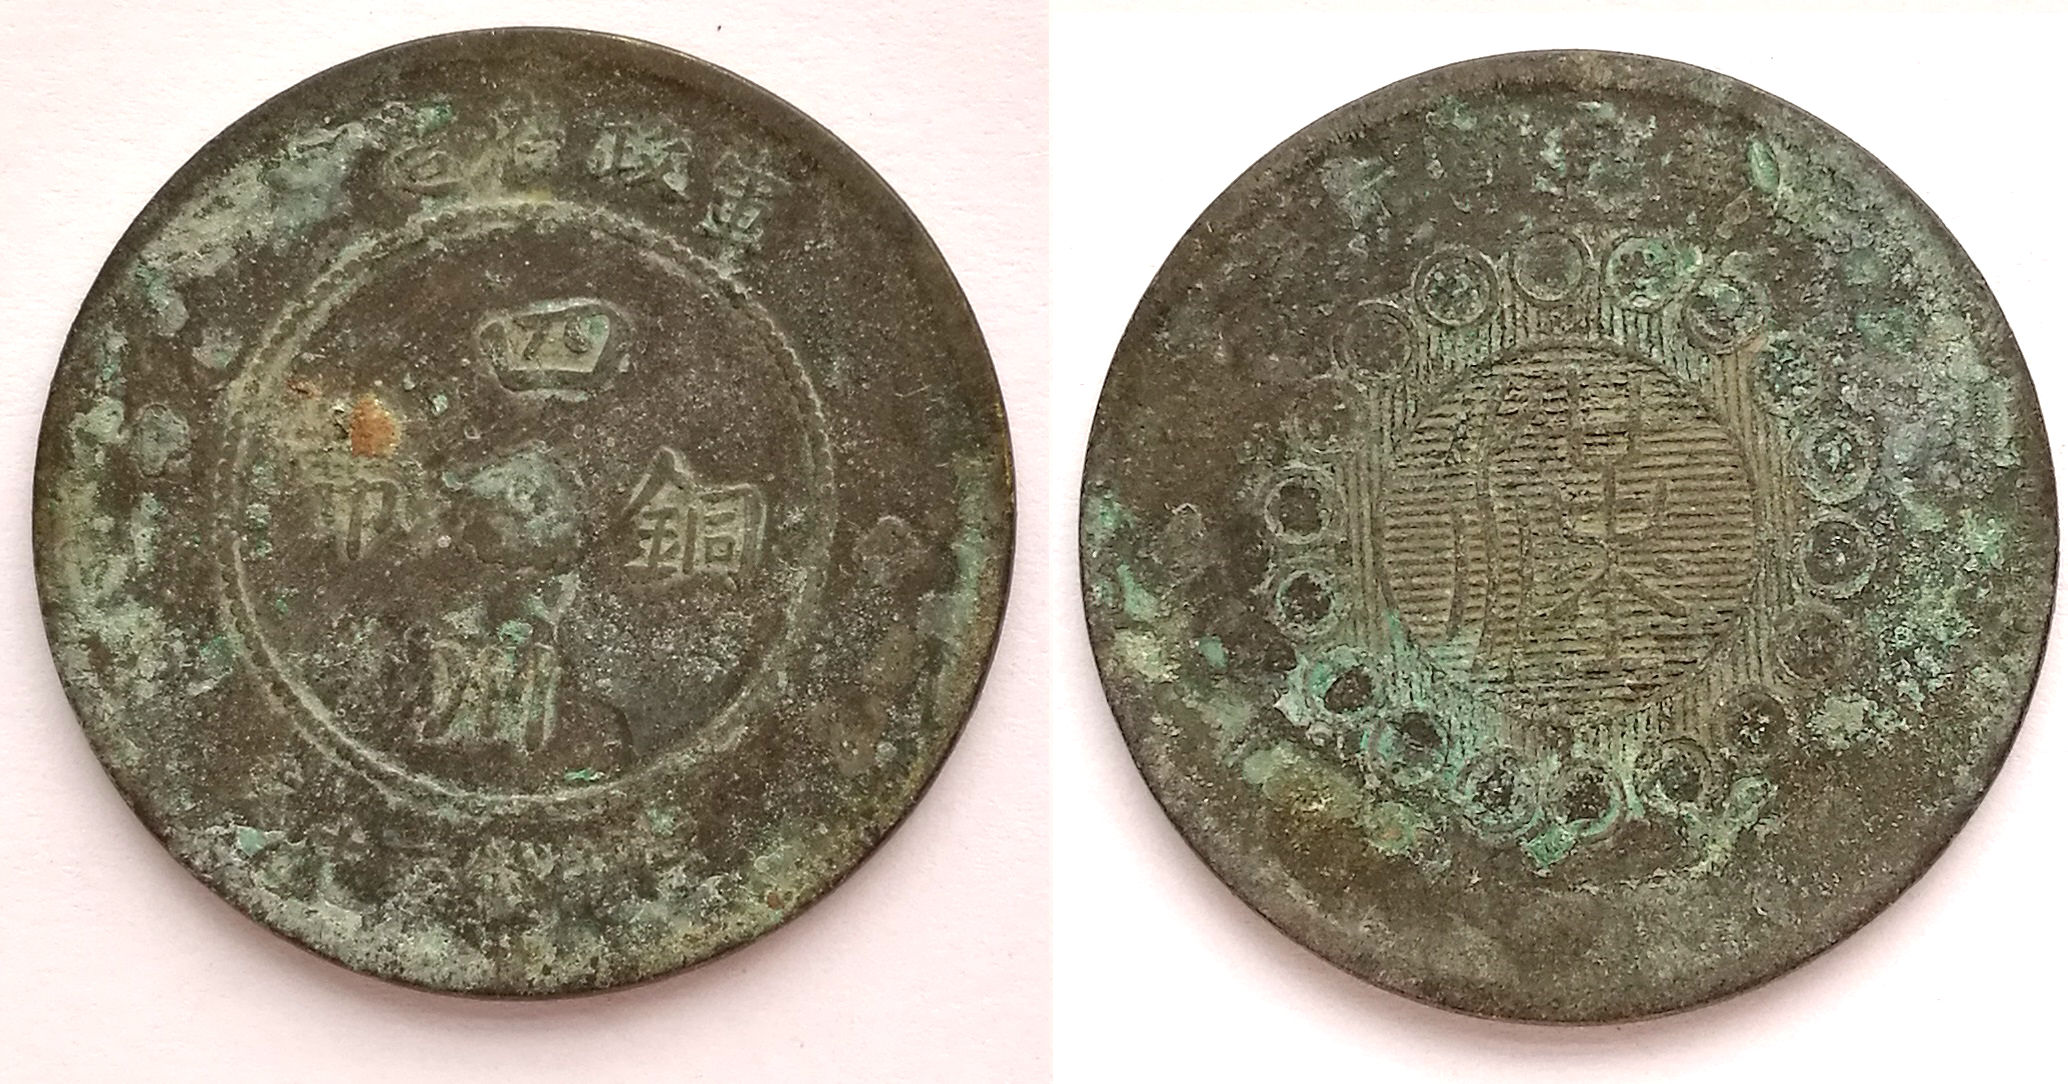 K5253, Szechuan (Si-Chuan) Province 50-Cash Coin, 1911 China